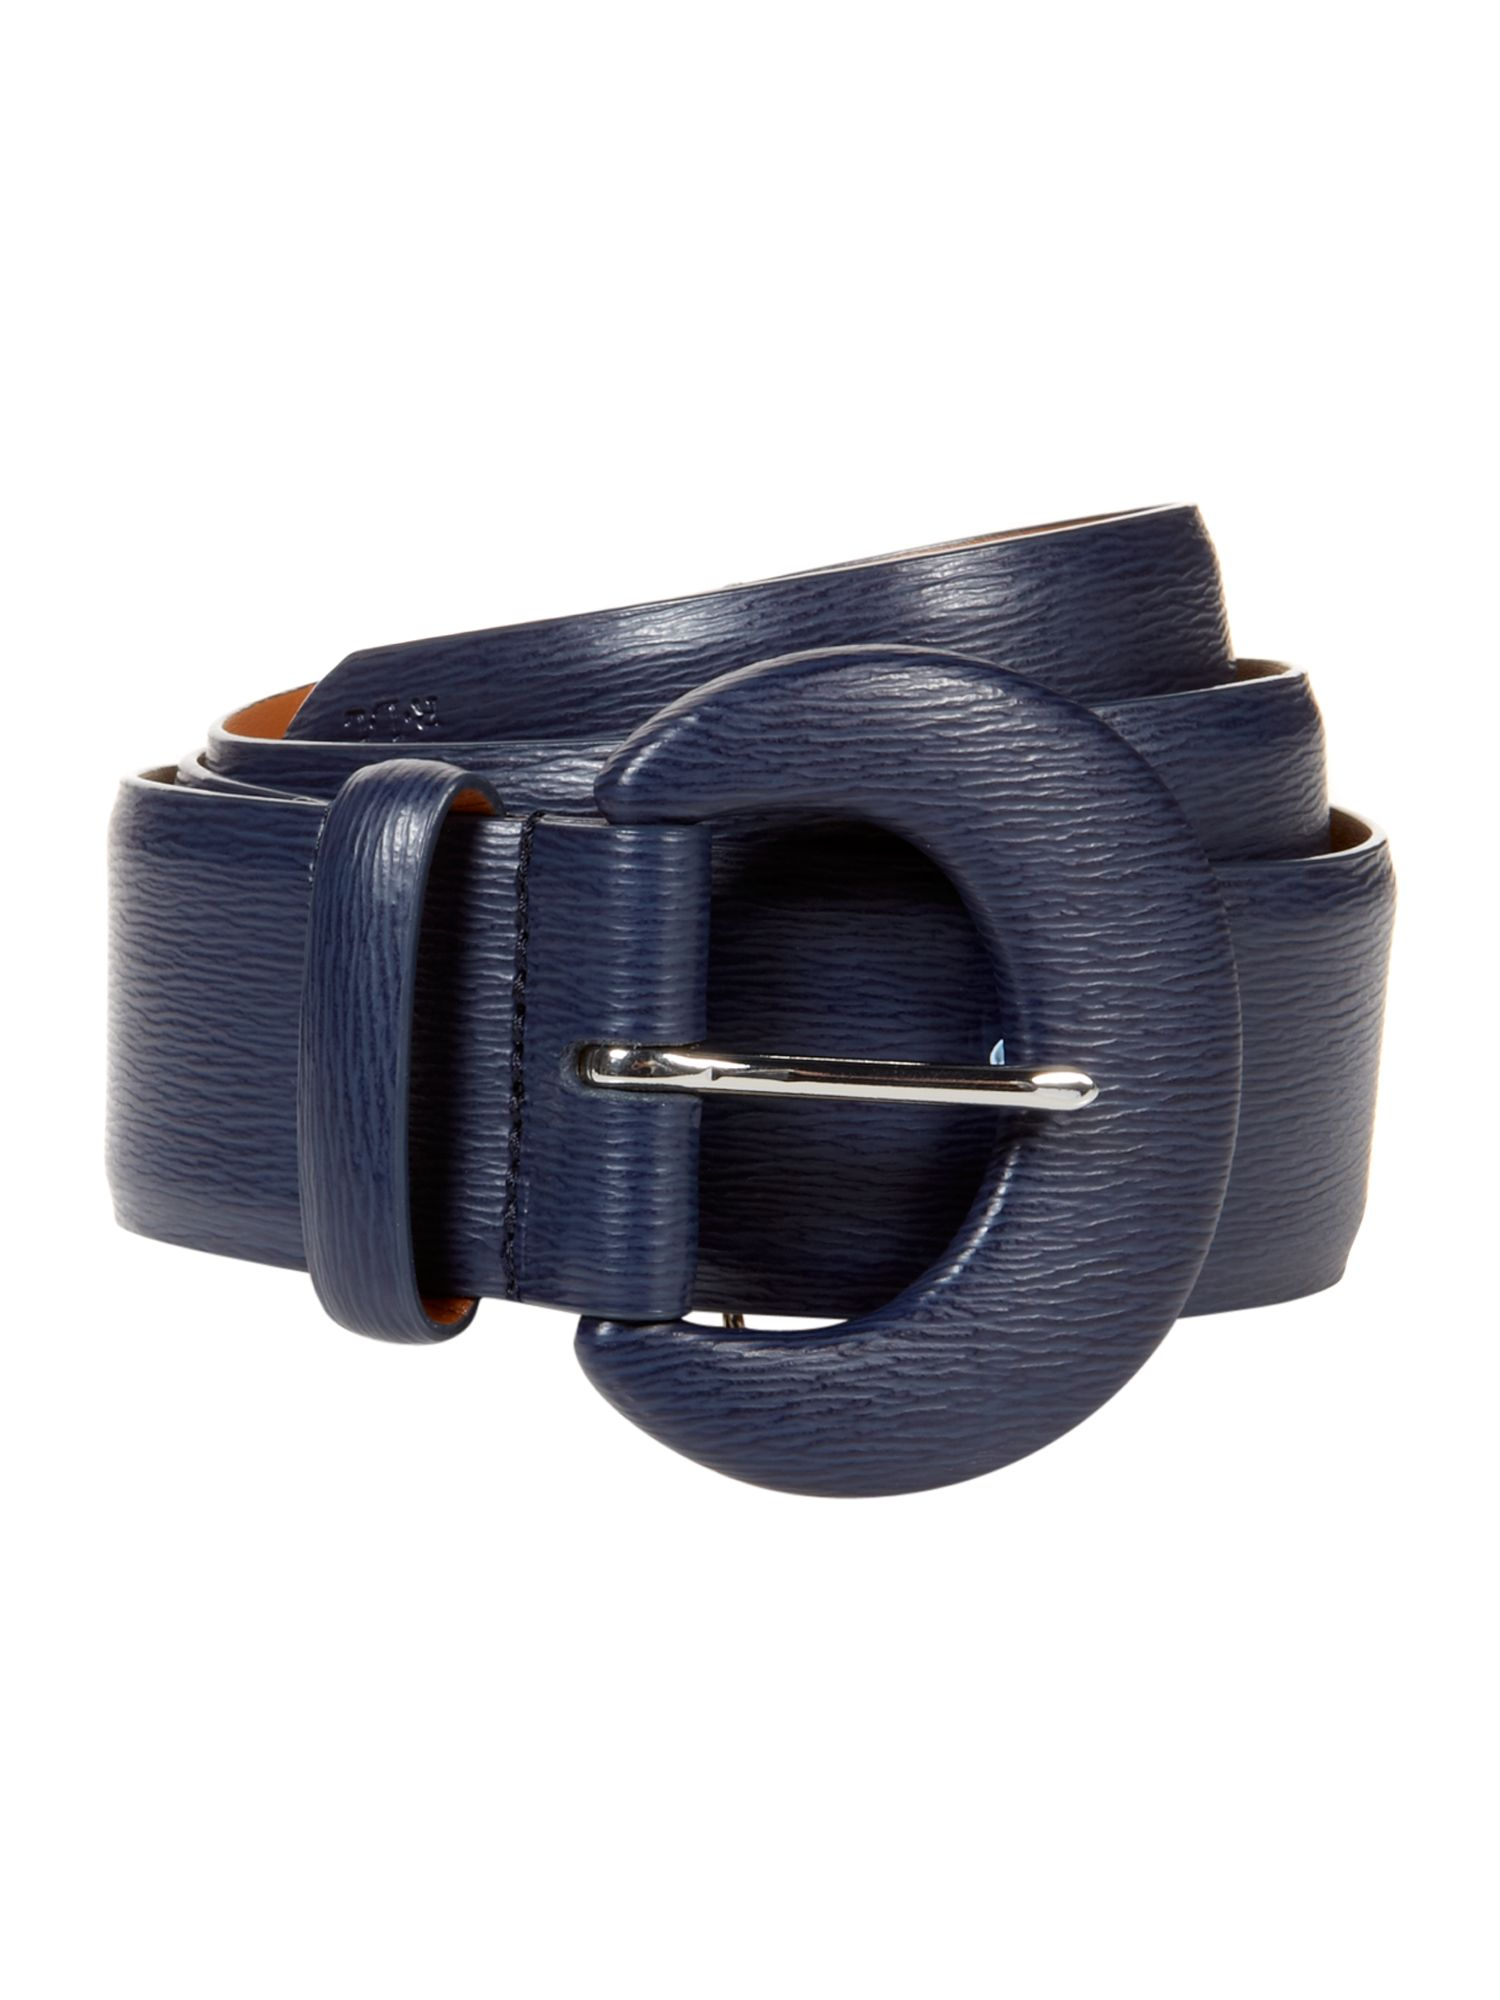 Thick fabric belt with leather detail